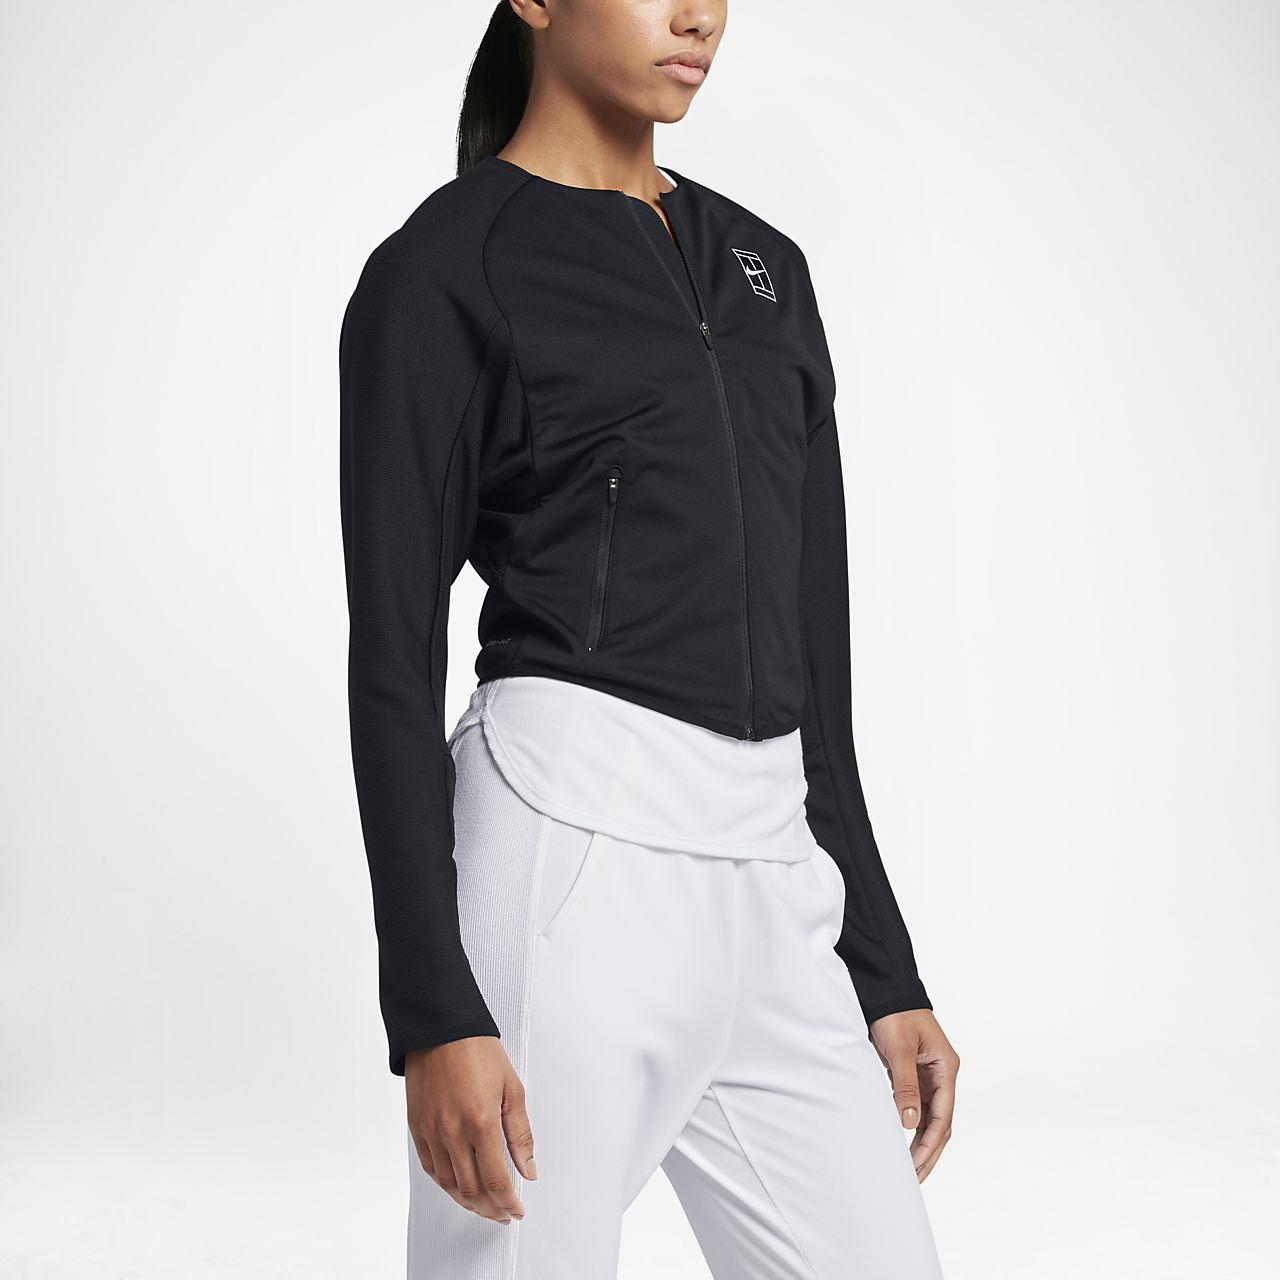 NikeCourt Women's Knit Tennis Jackets Black/White